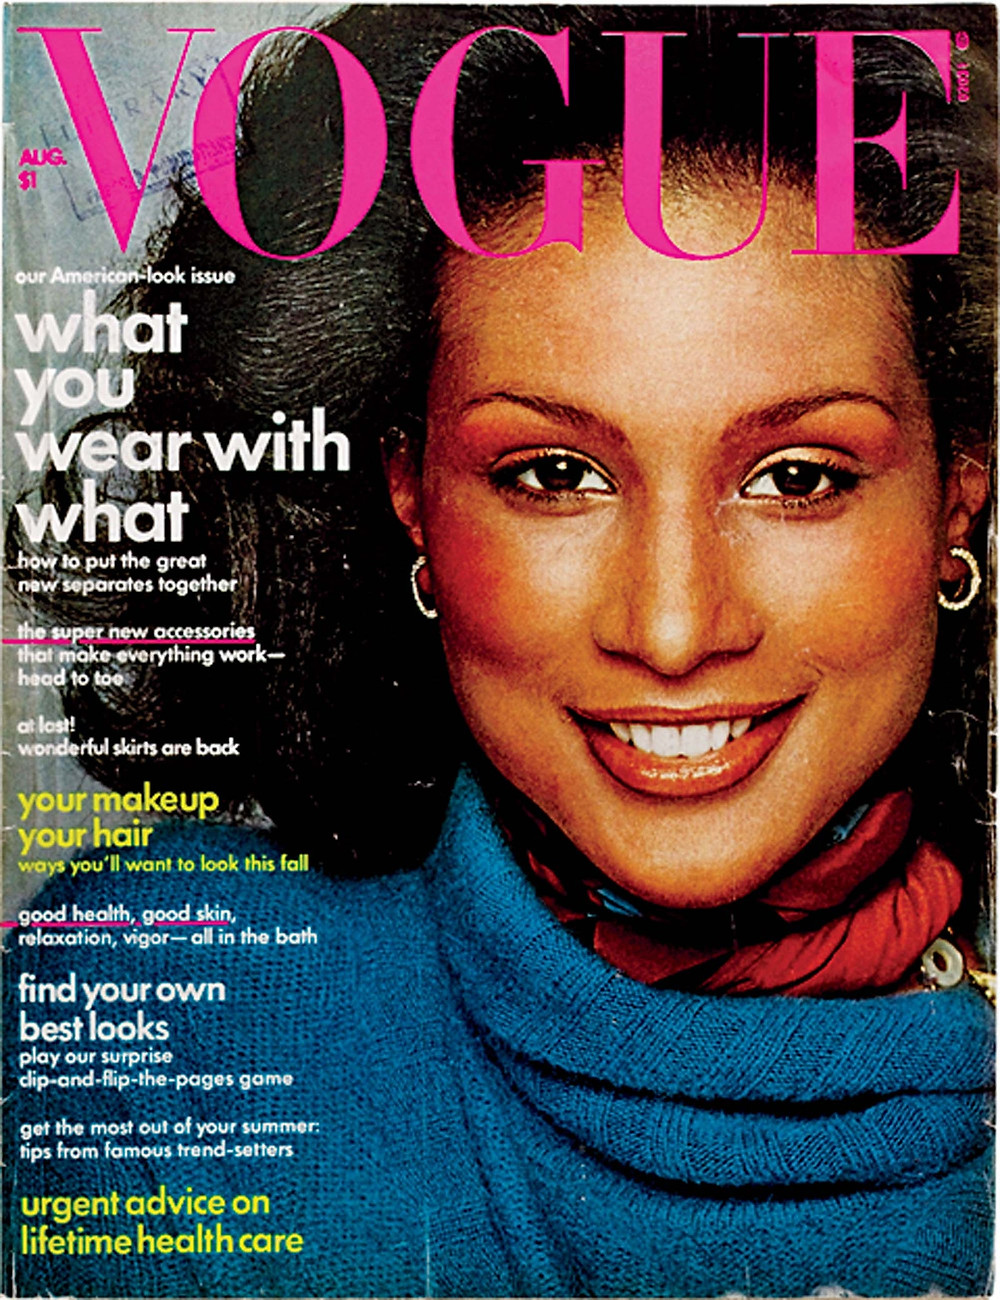 Reprint from August 1974: The cover of American Vogue with model Beverly Johnson.